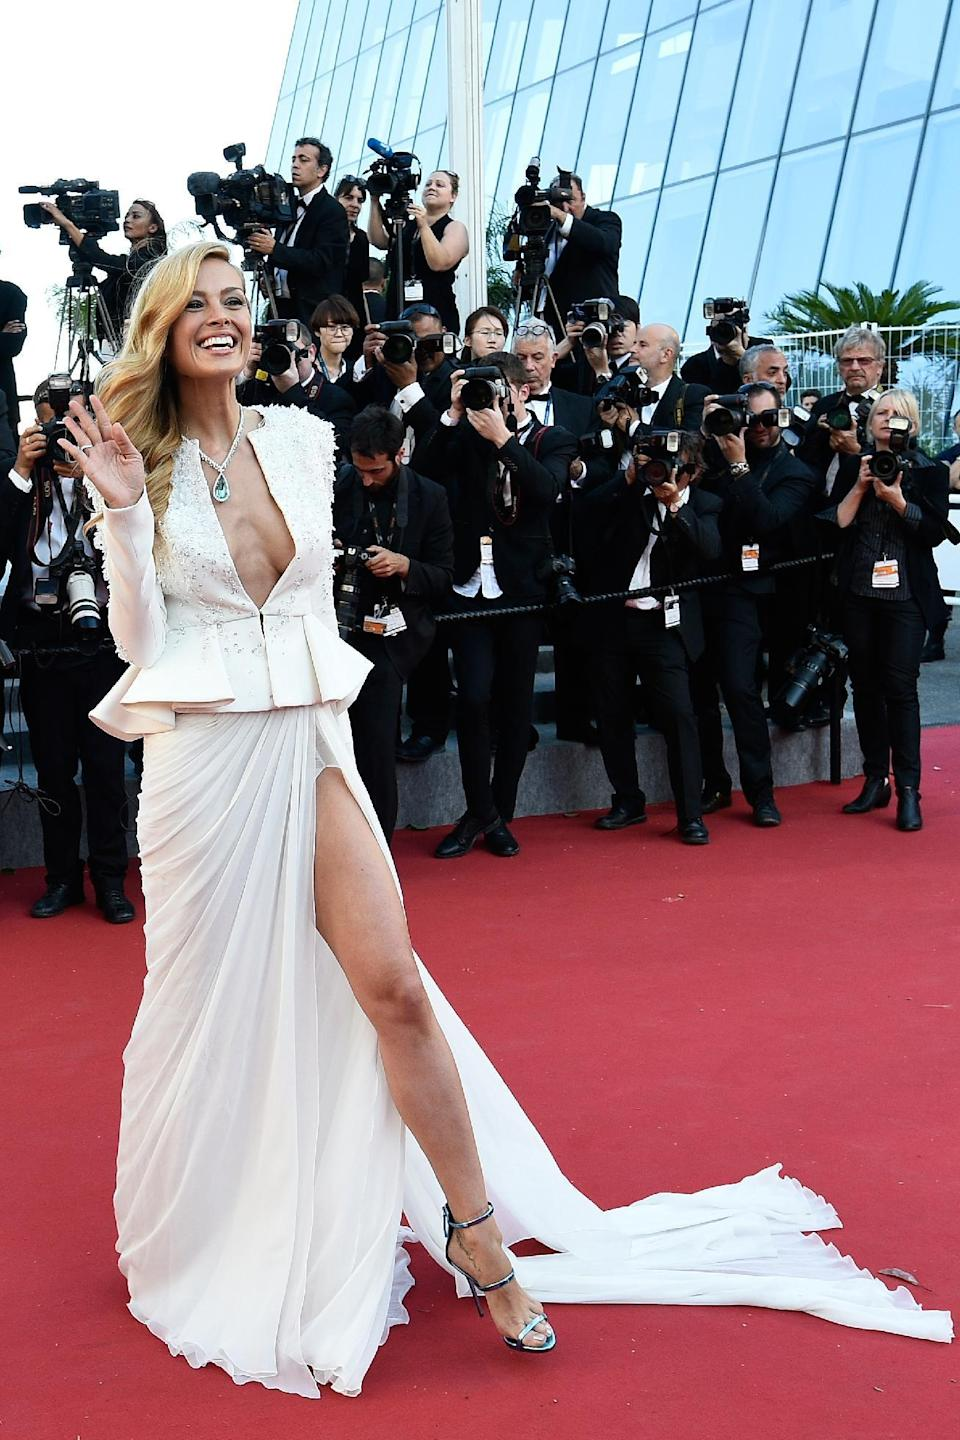 White ensembles with slit skirts, such as this Zuhair Murad Couture gown worn by Petra Nemcova, were a popular choice at Cannes 2015.